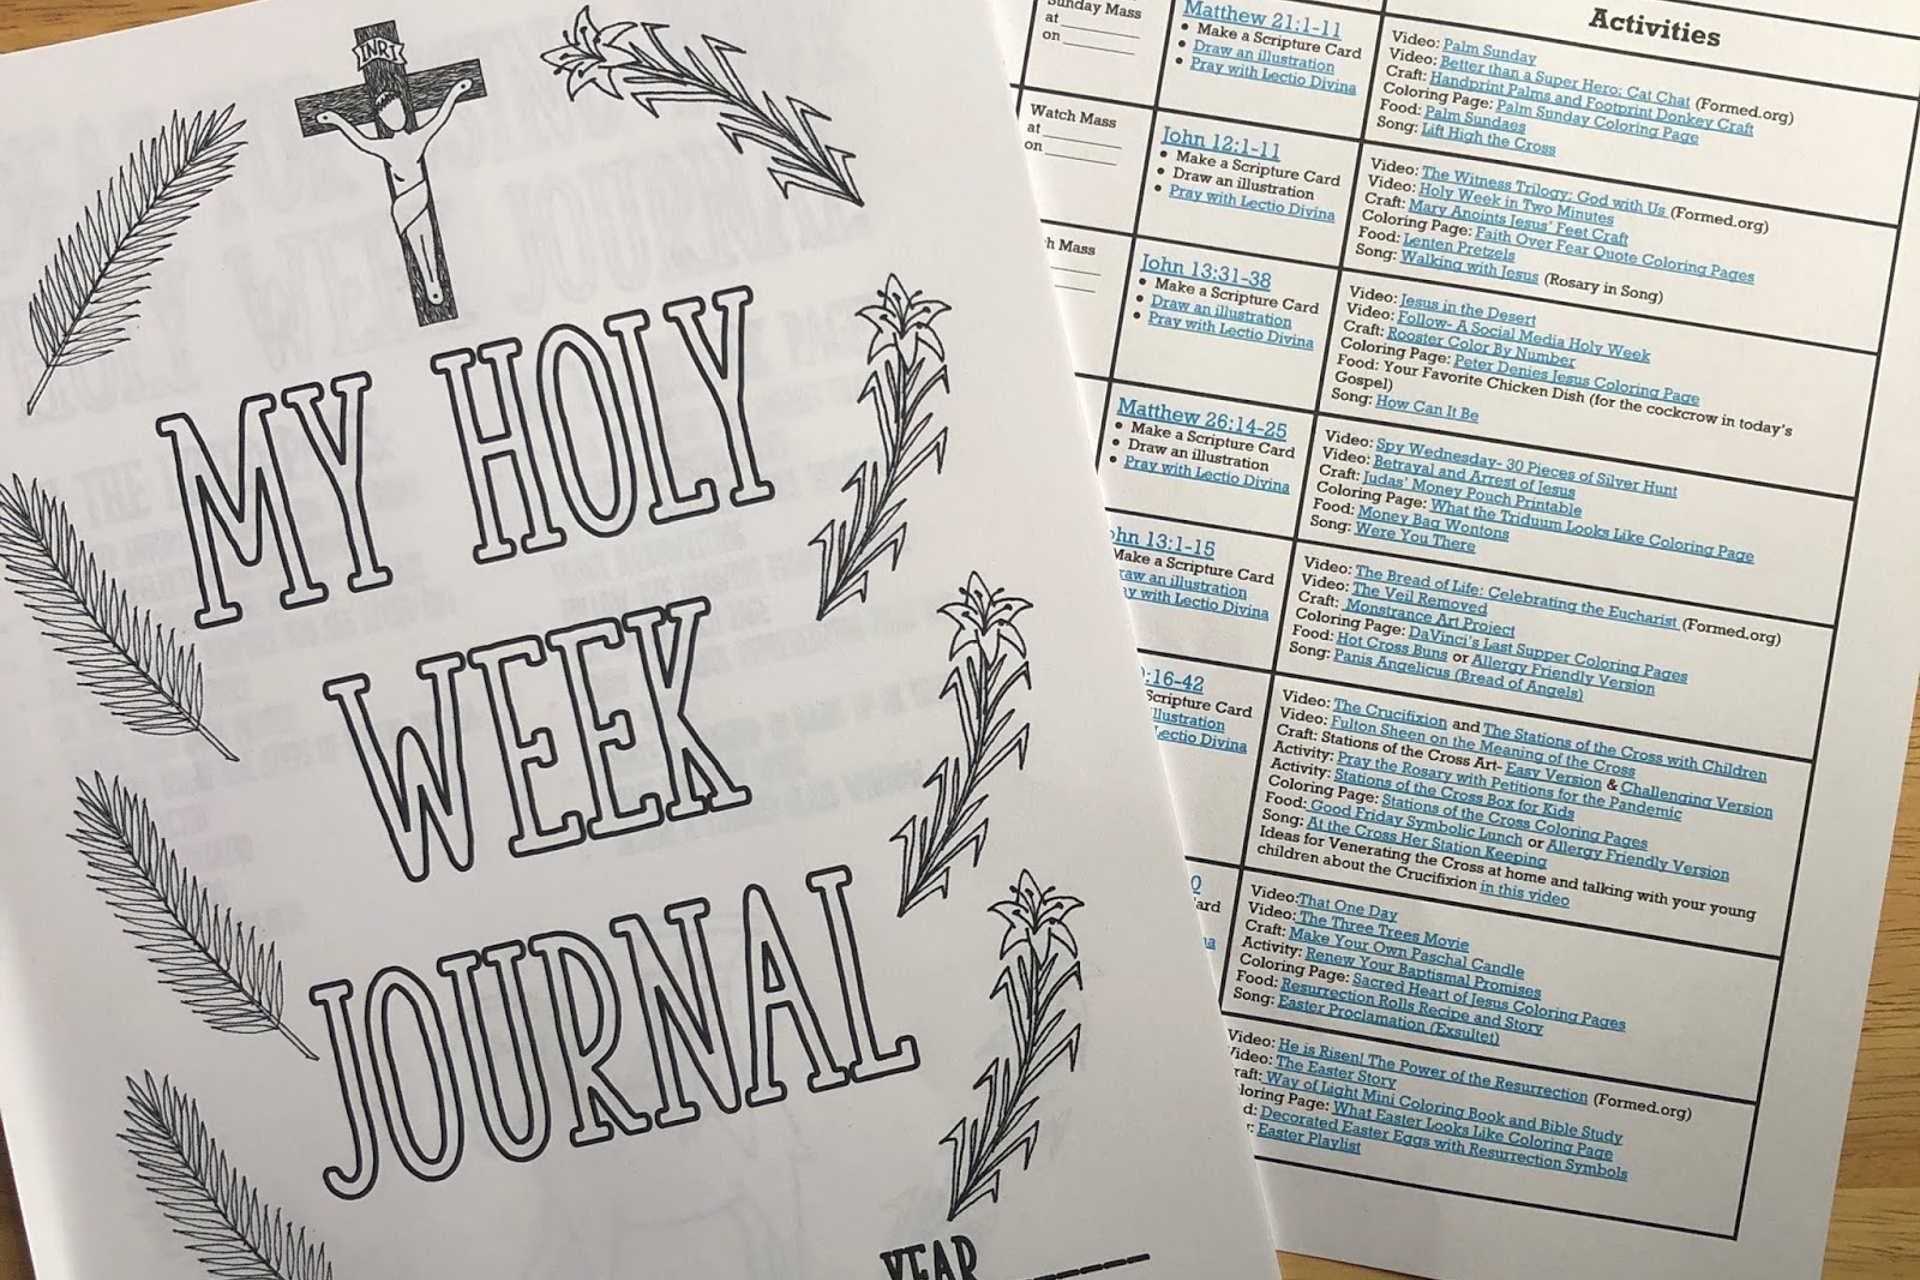 Holy Week (at Home) Timetable and Resources